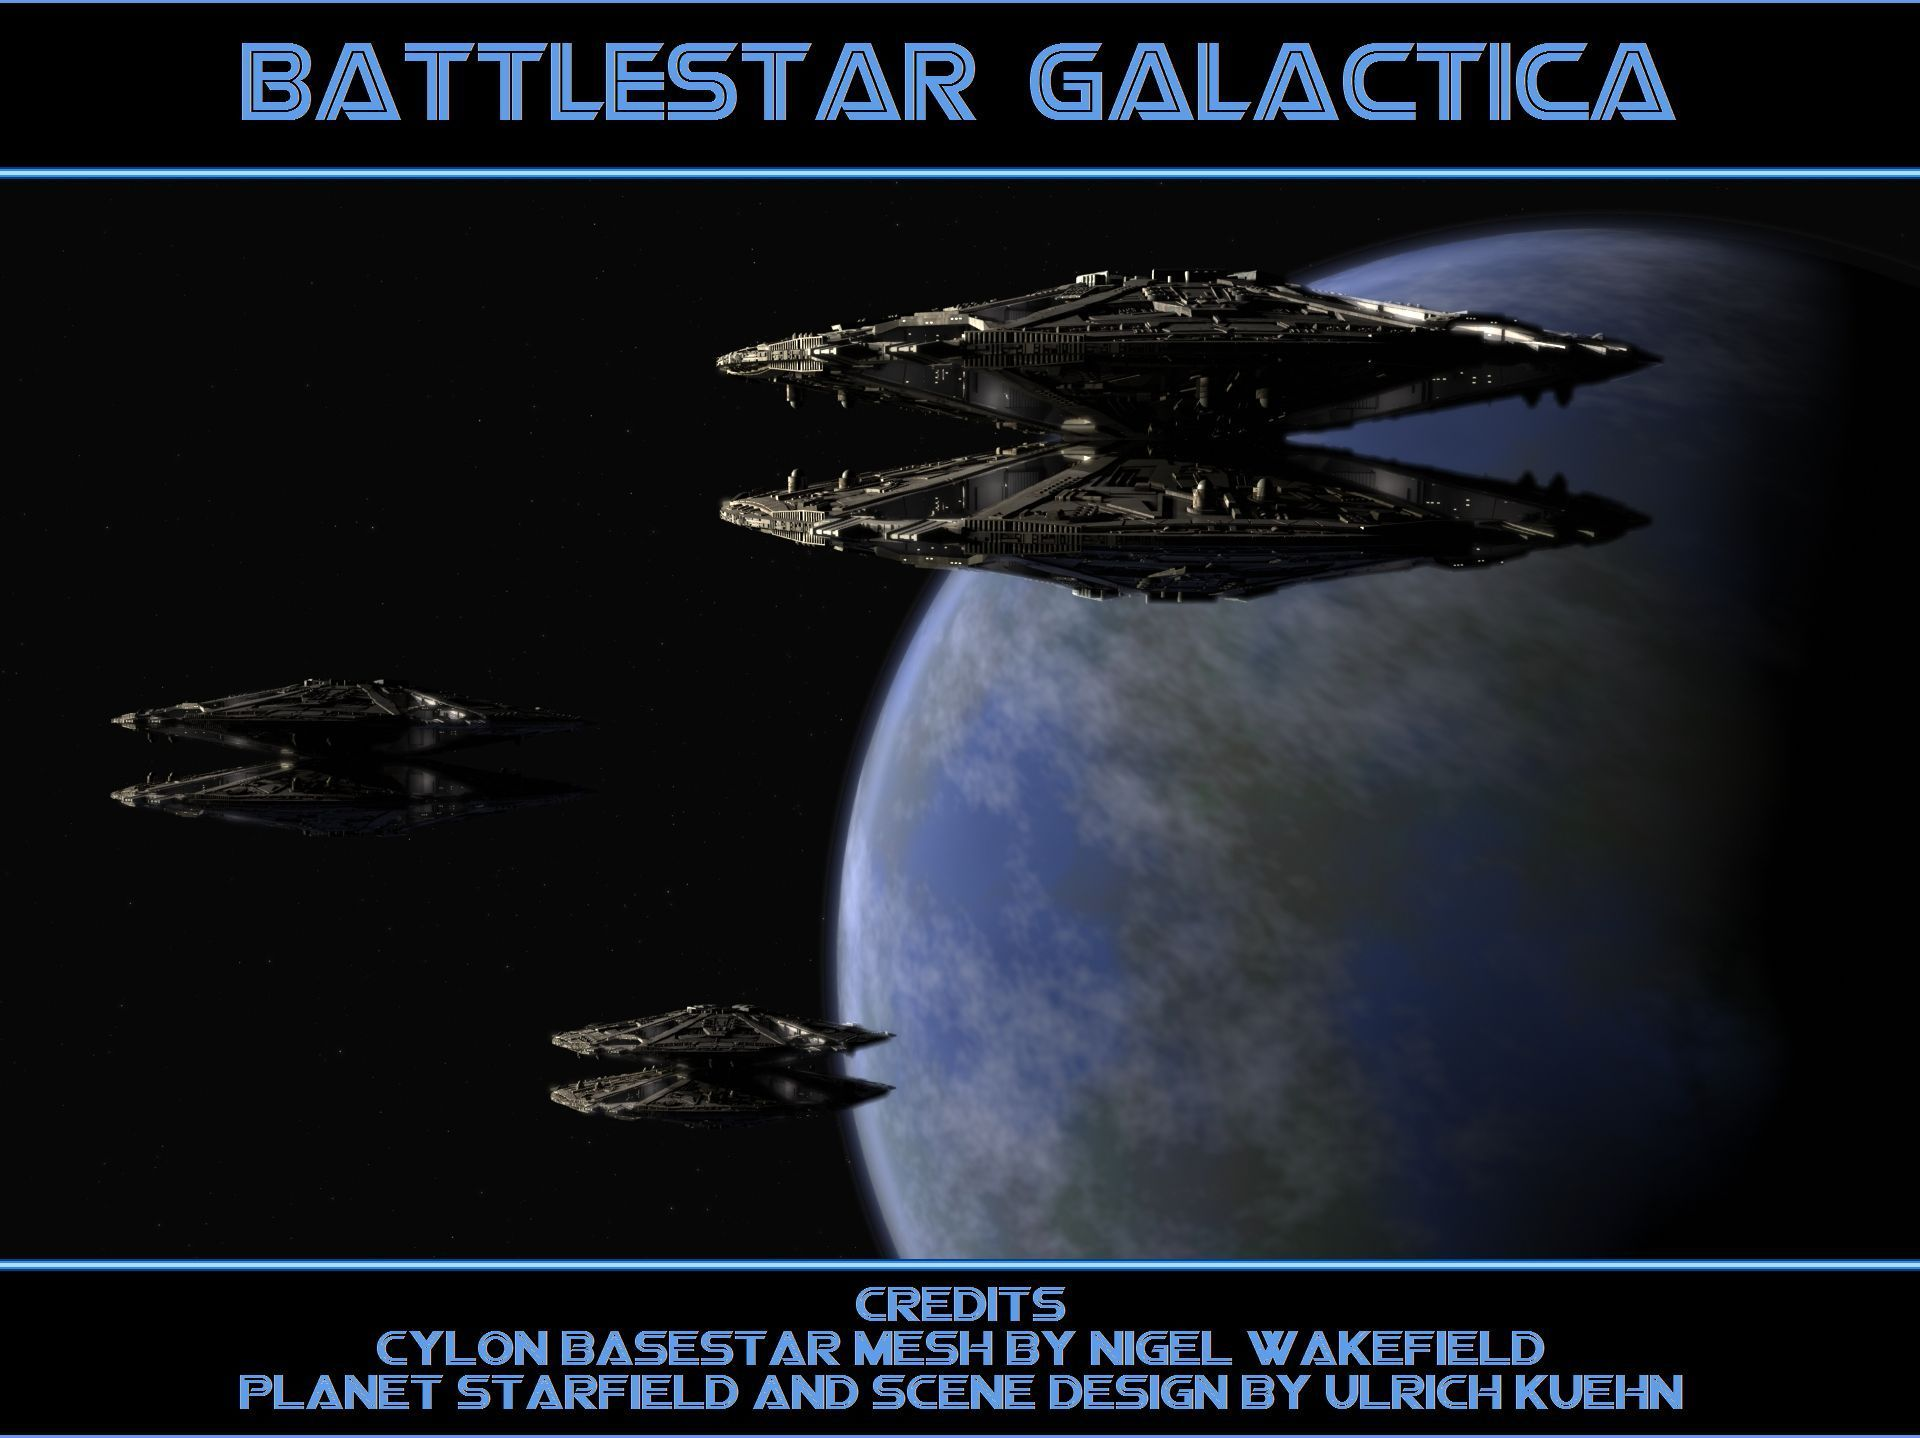 My Cure for Complacency Cylon-Attack-battlestar-galactica-3997310-1920-1438